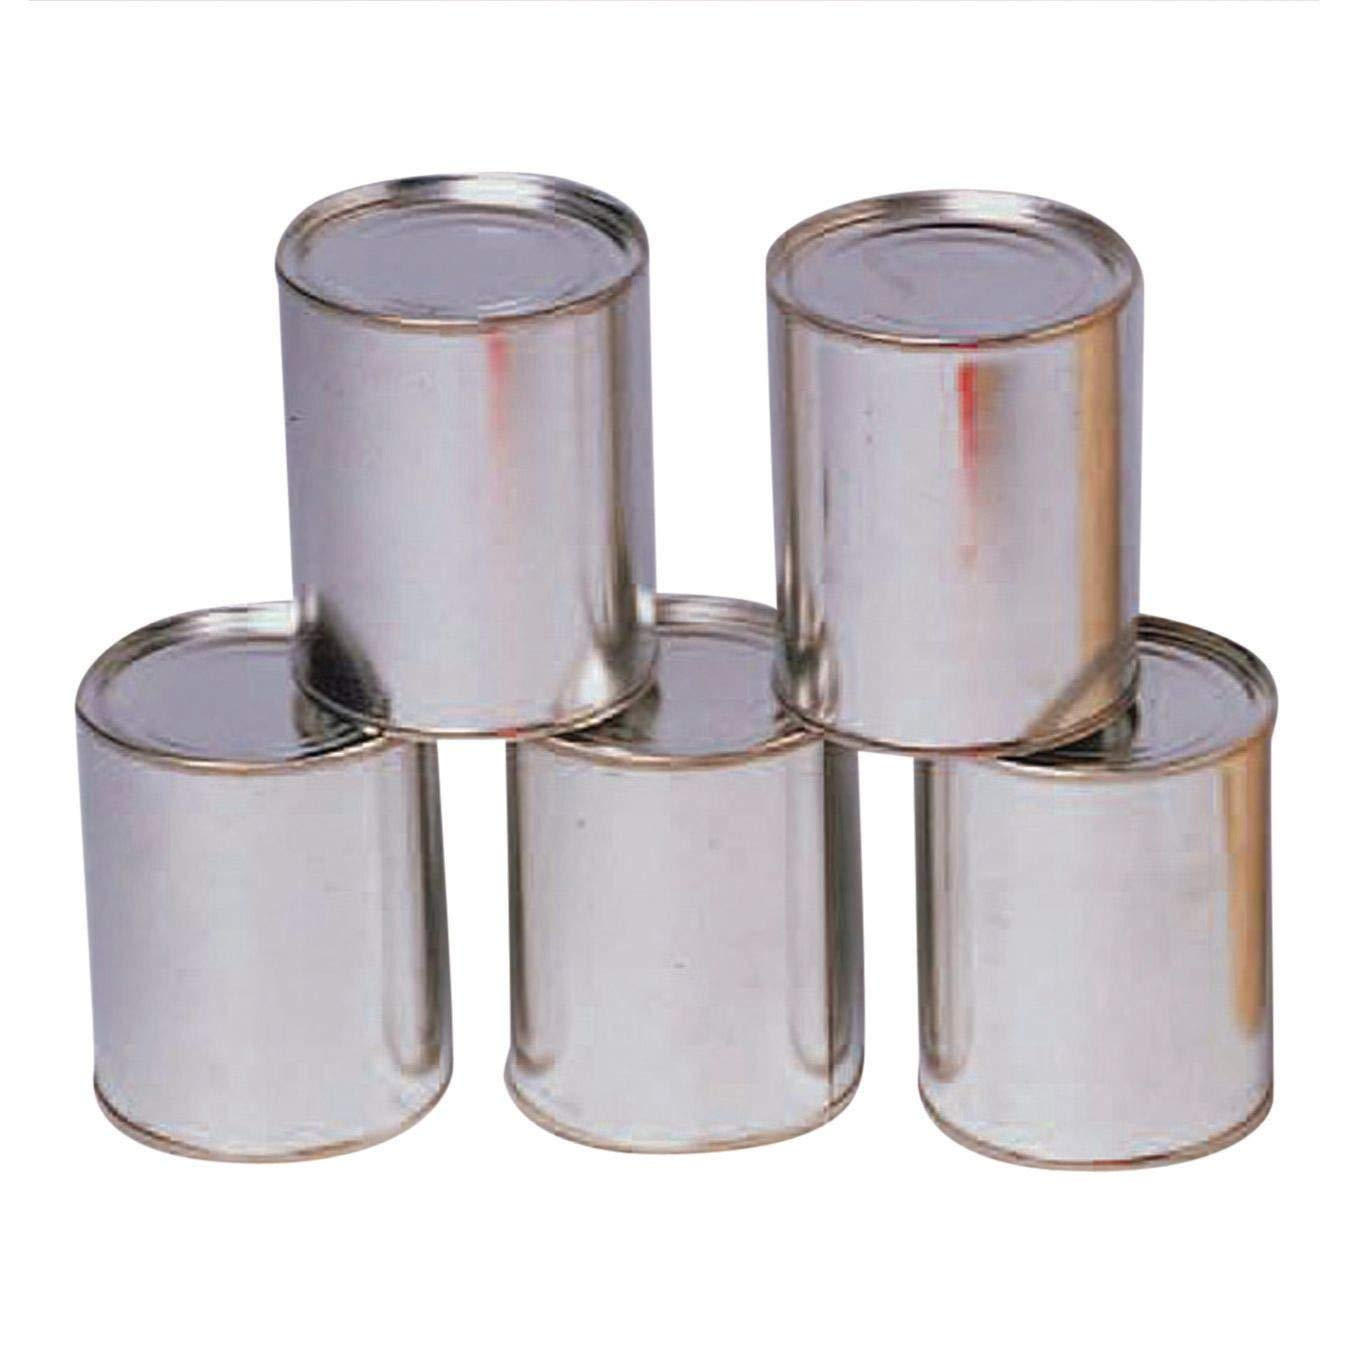 U.S. Toy GS93 Metal Cans (Pack of 12) by U.S. Toy